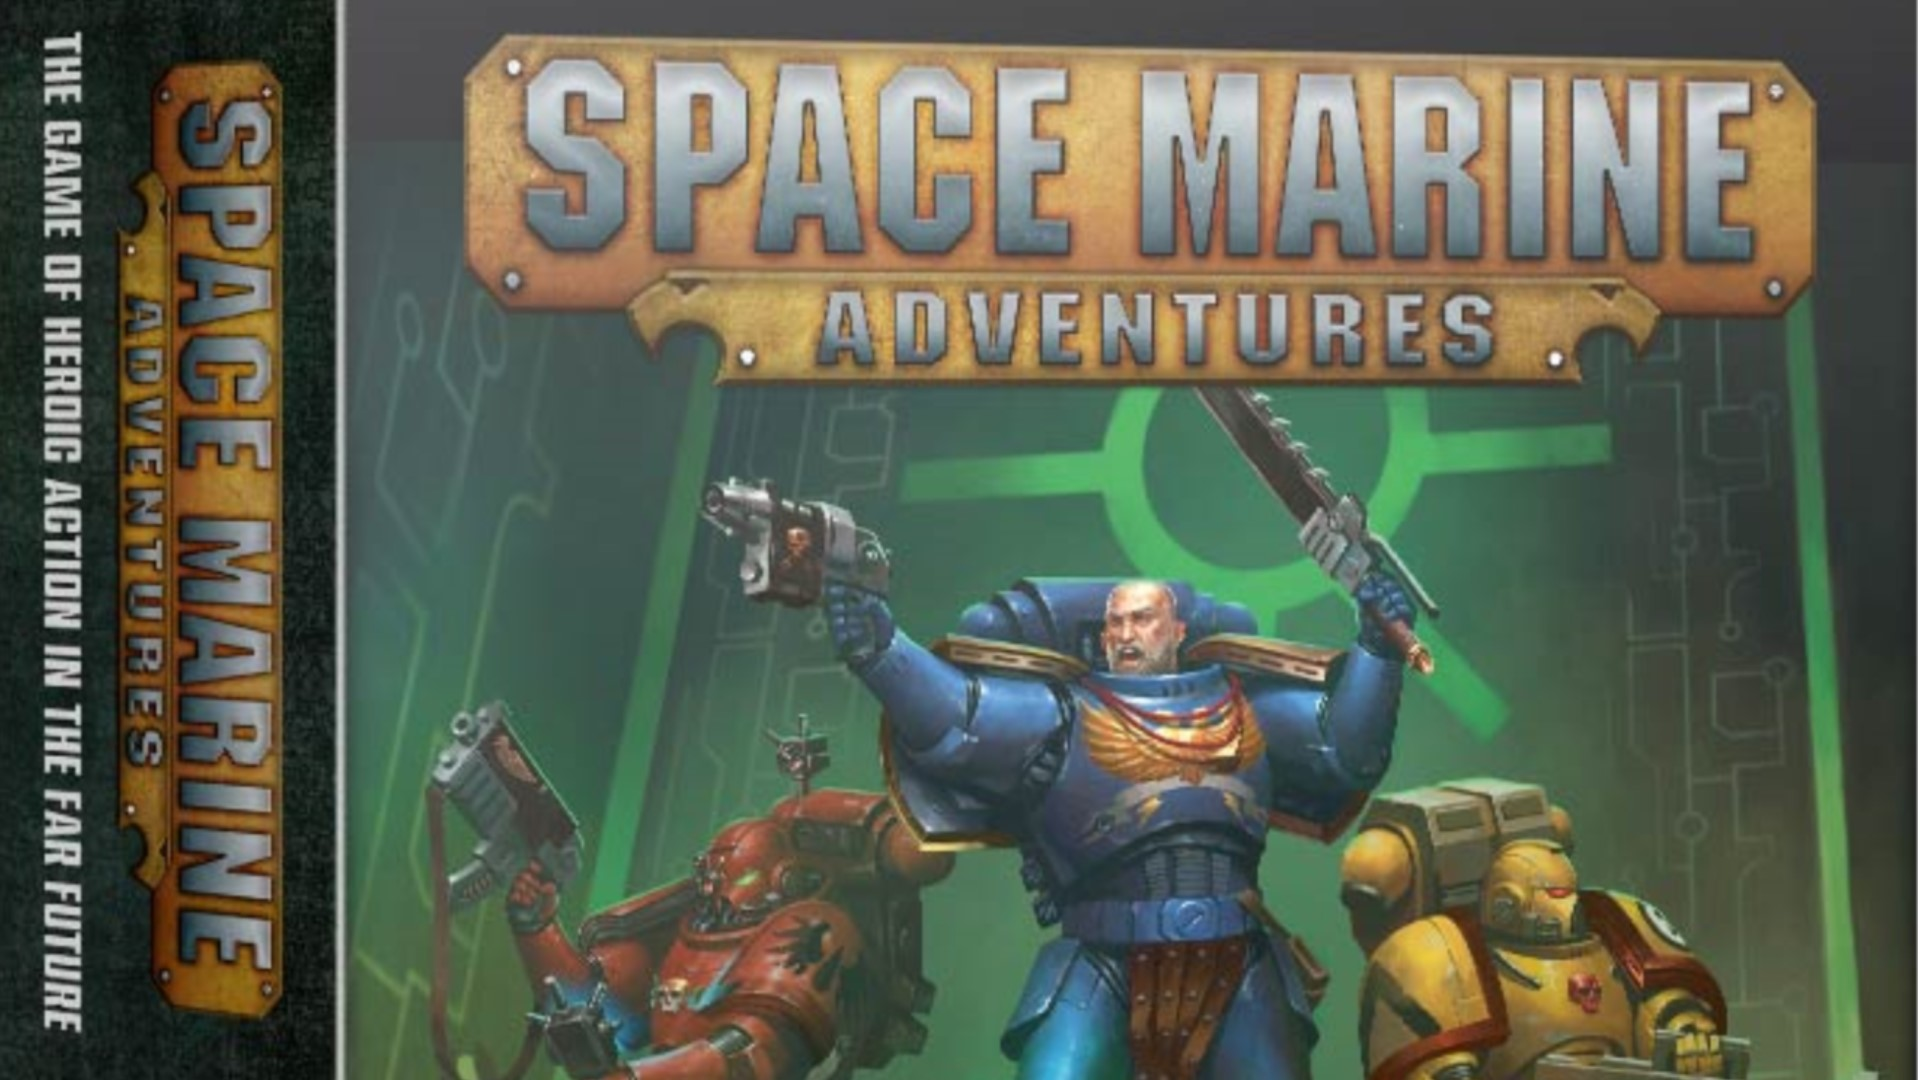 NEWS: Games Workshop bring Space Marine Adventures to the